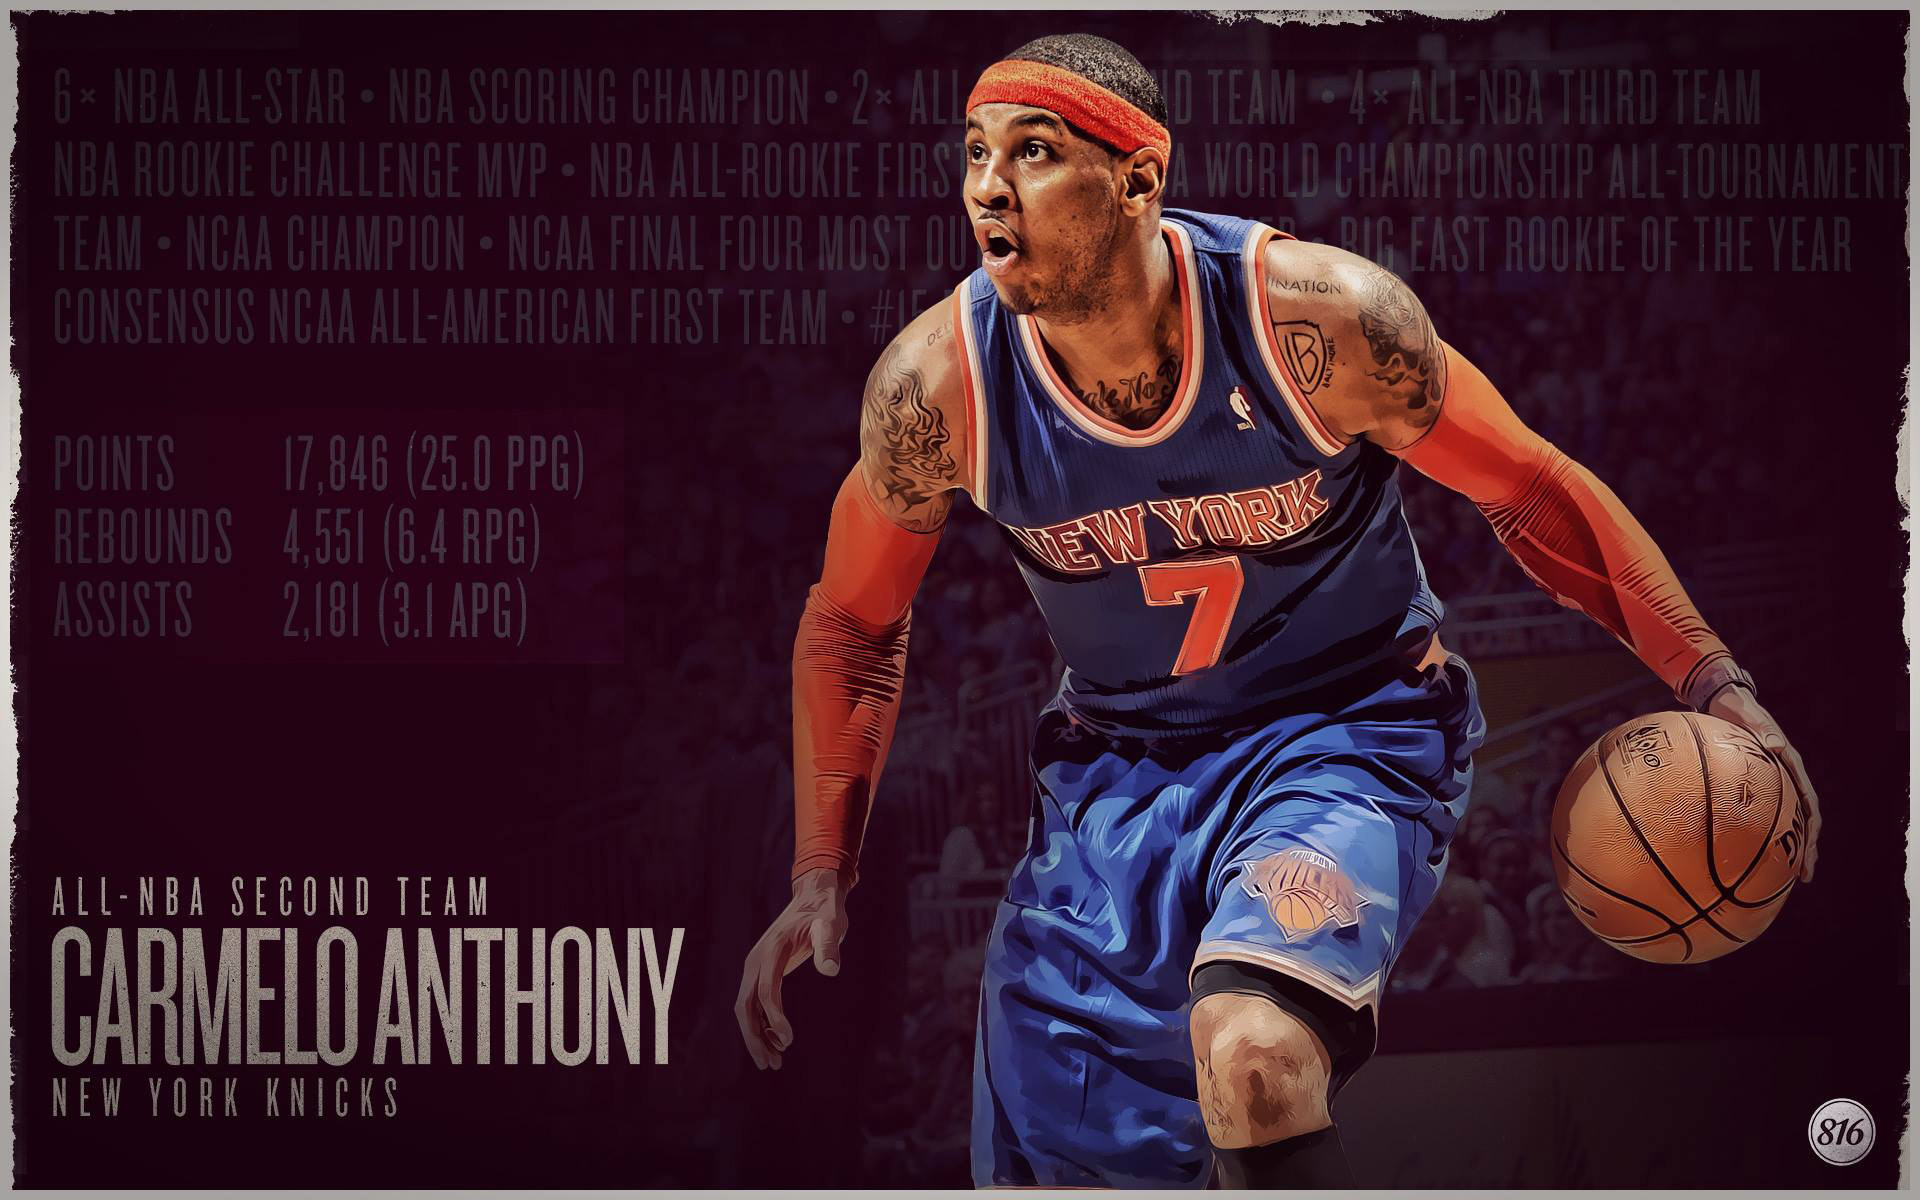 1920x1200 Carmelo Anthony 2013 All-NBA Second Team  Wallpaper